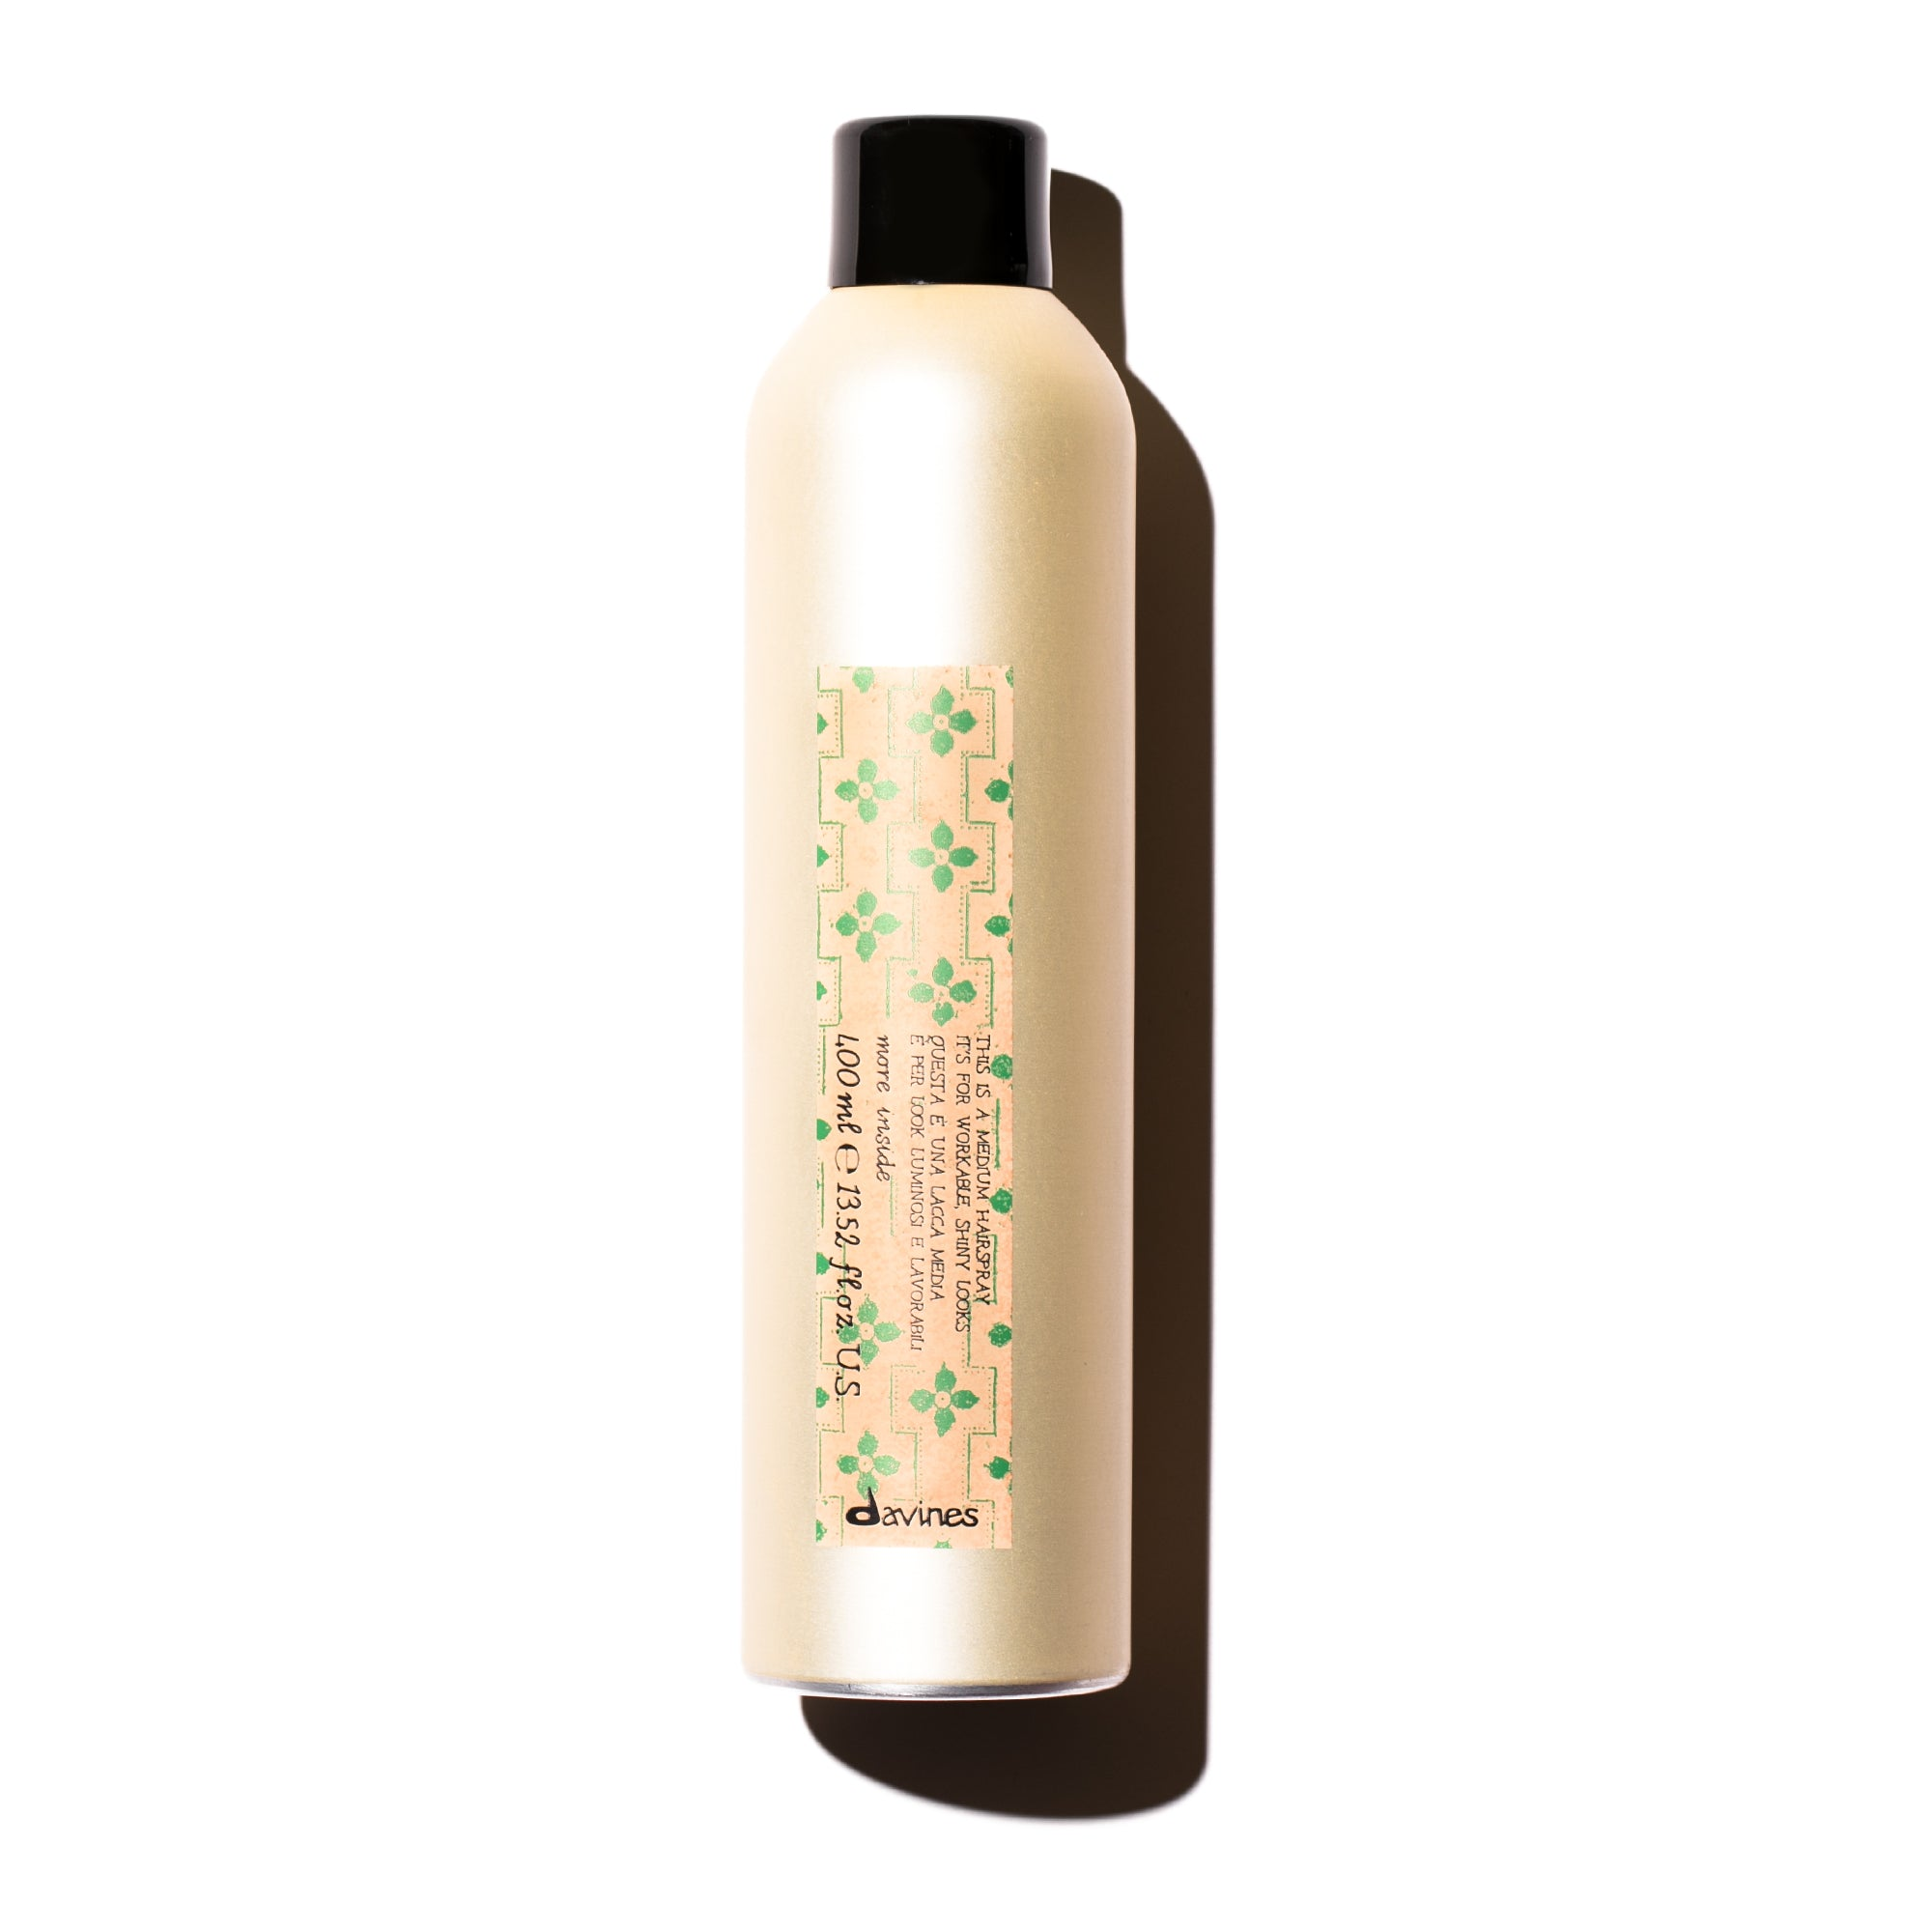 THIS IS A MEDIUM HAIRSPRAY 400 ML